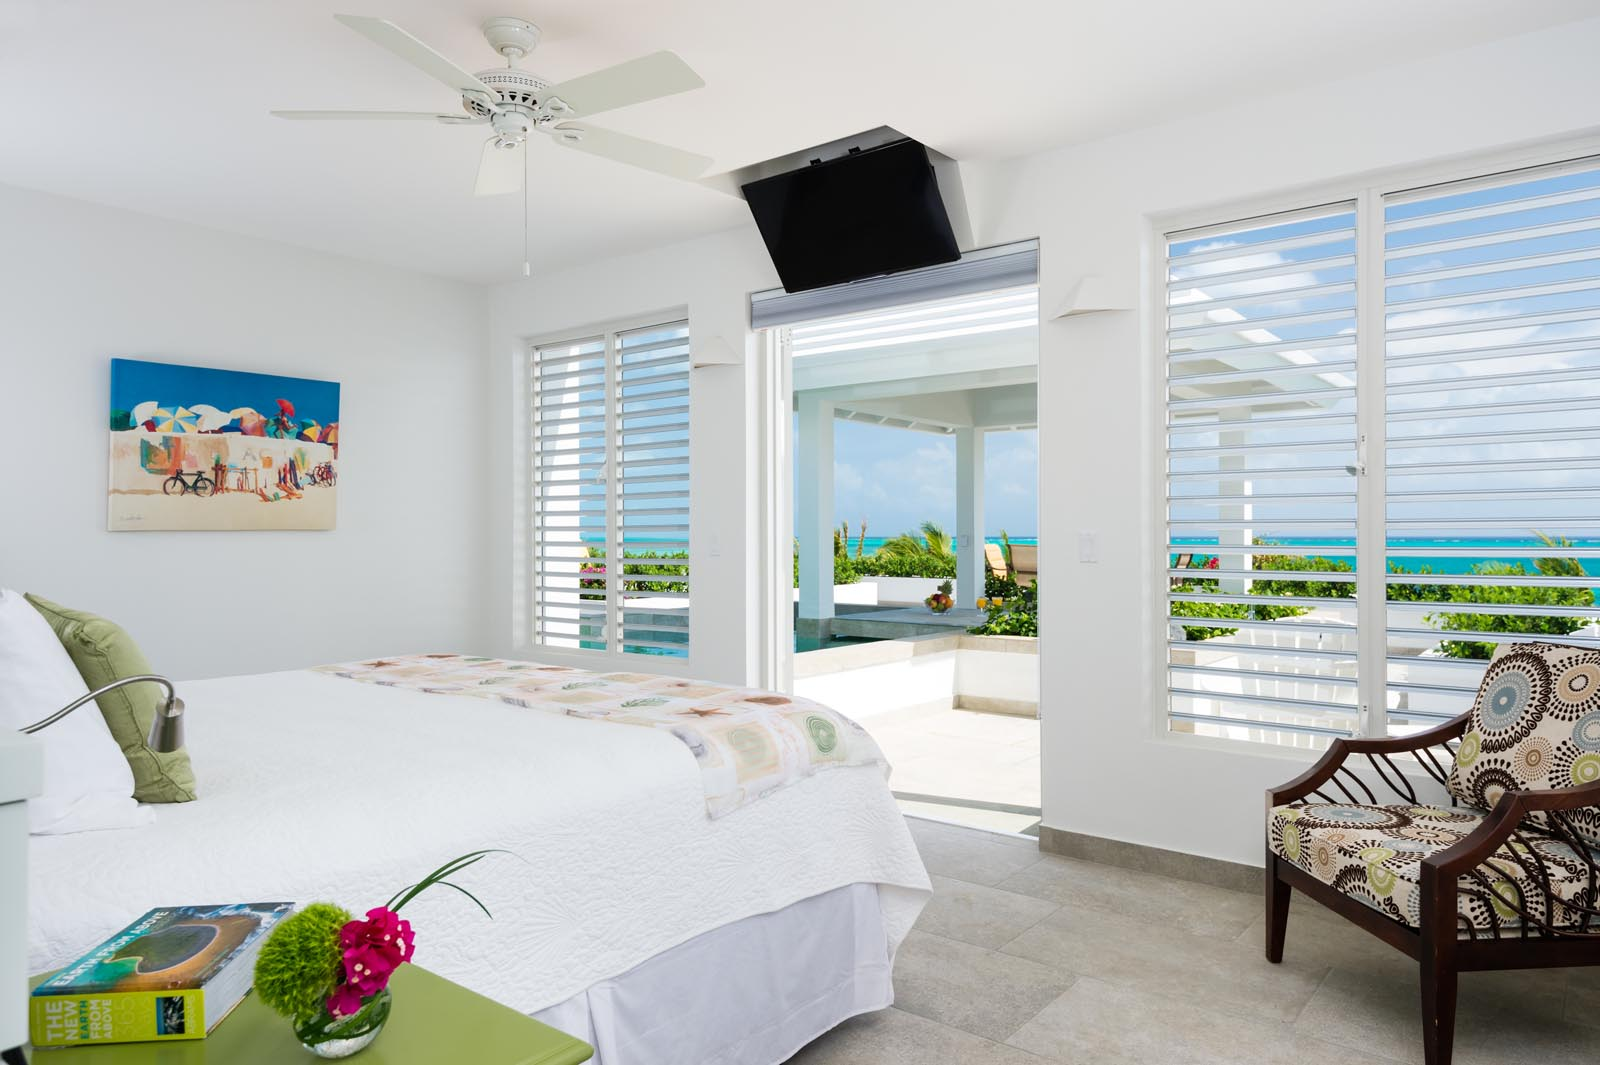 Wake up to a stunning view at Cascade, Babalua Beach, Providenciales (Provo), Turks and Caicos Islands.